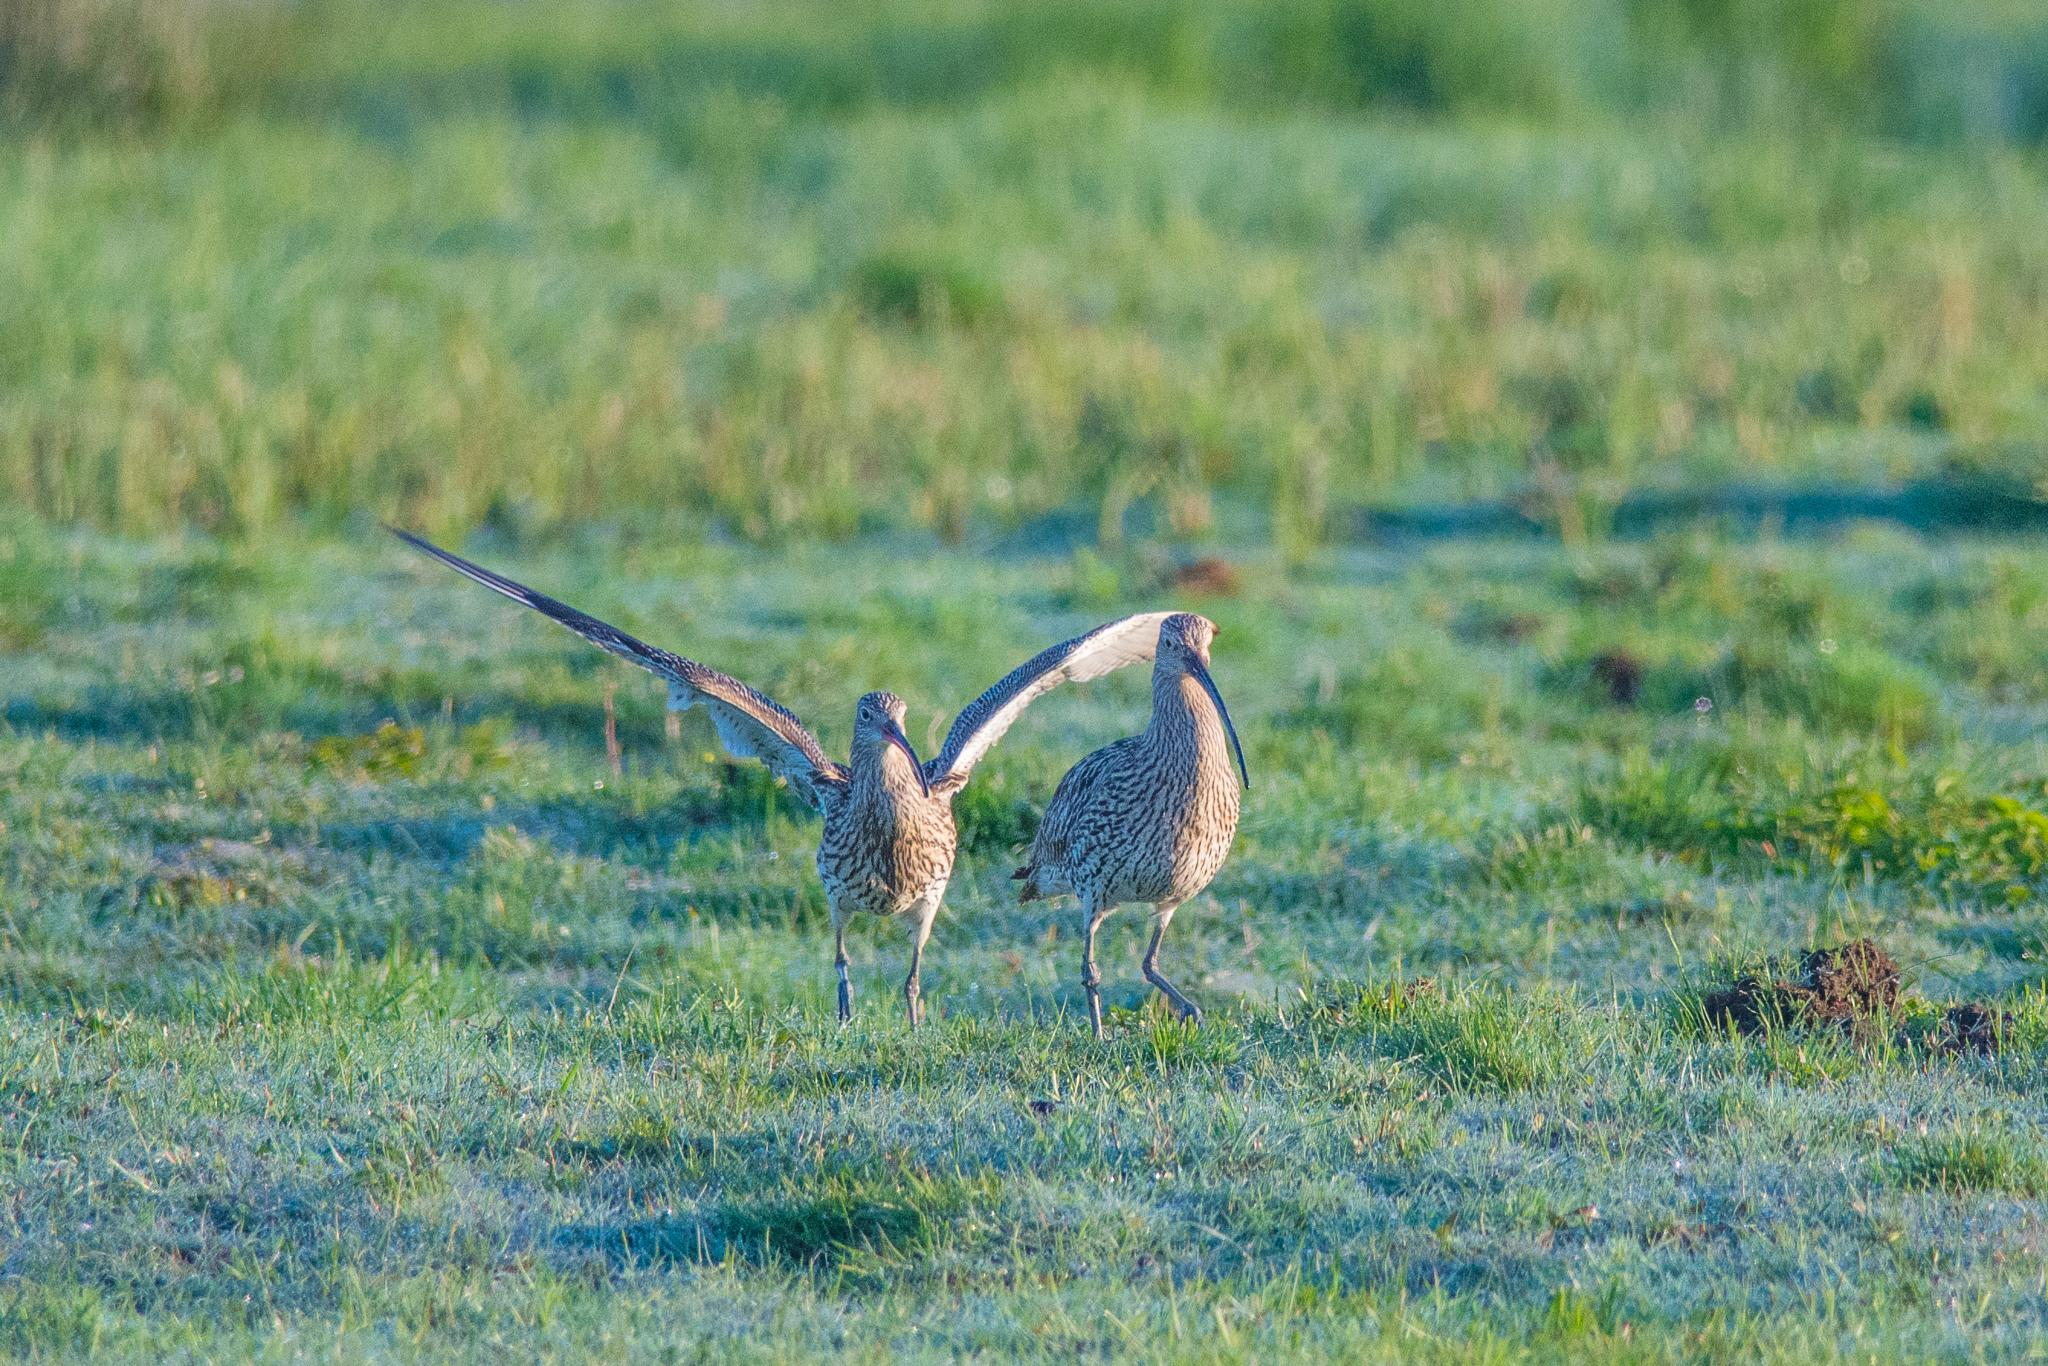 Courtship by Somebody is watching you